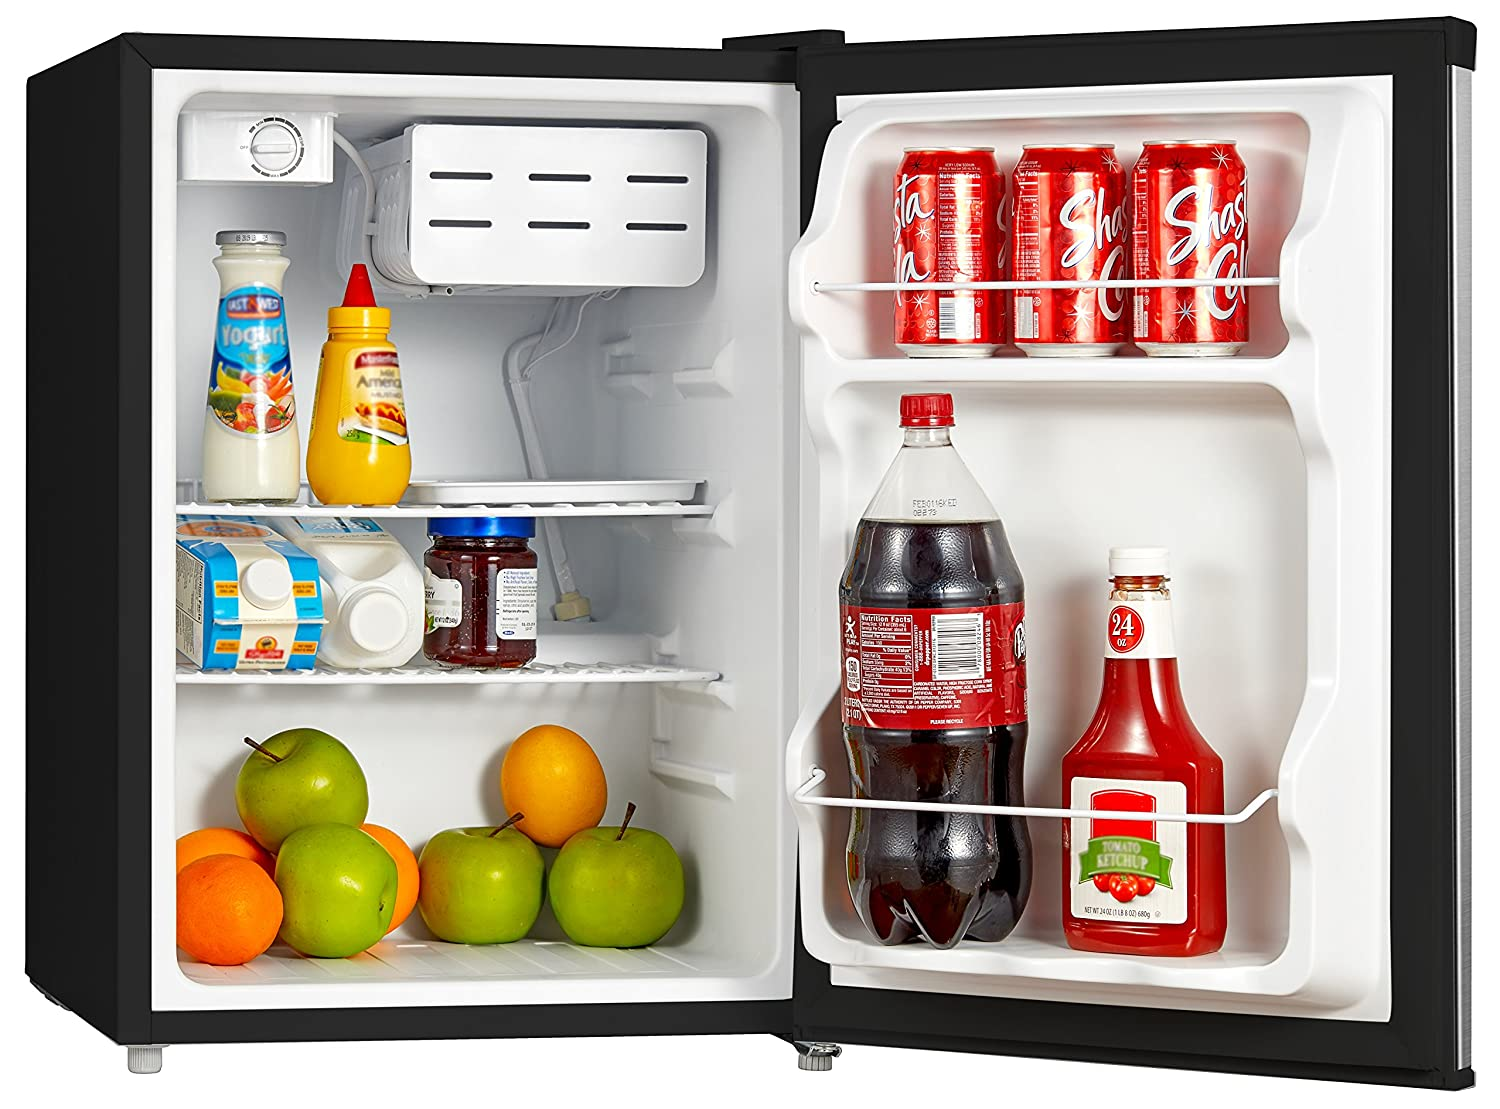 10 Best Mini Fridge In India Review October 2020,What Does Complete Color Blindness Look Like